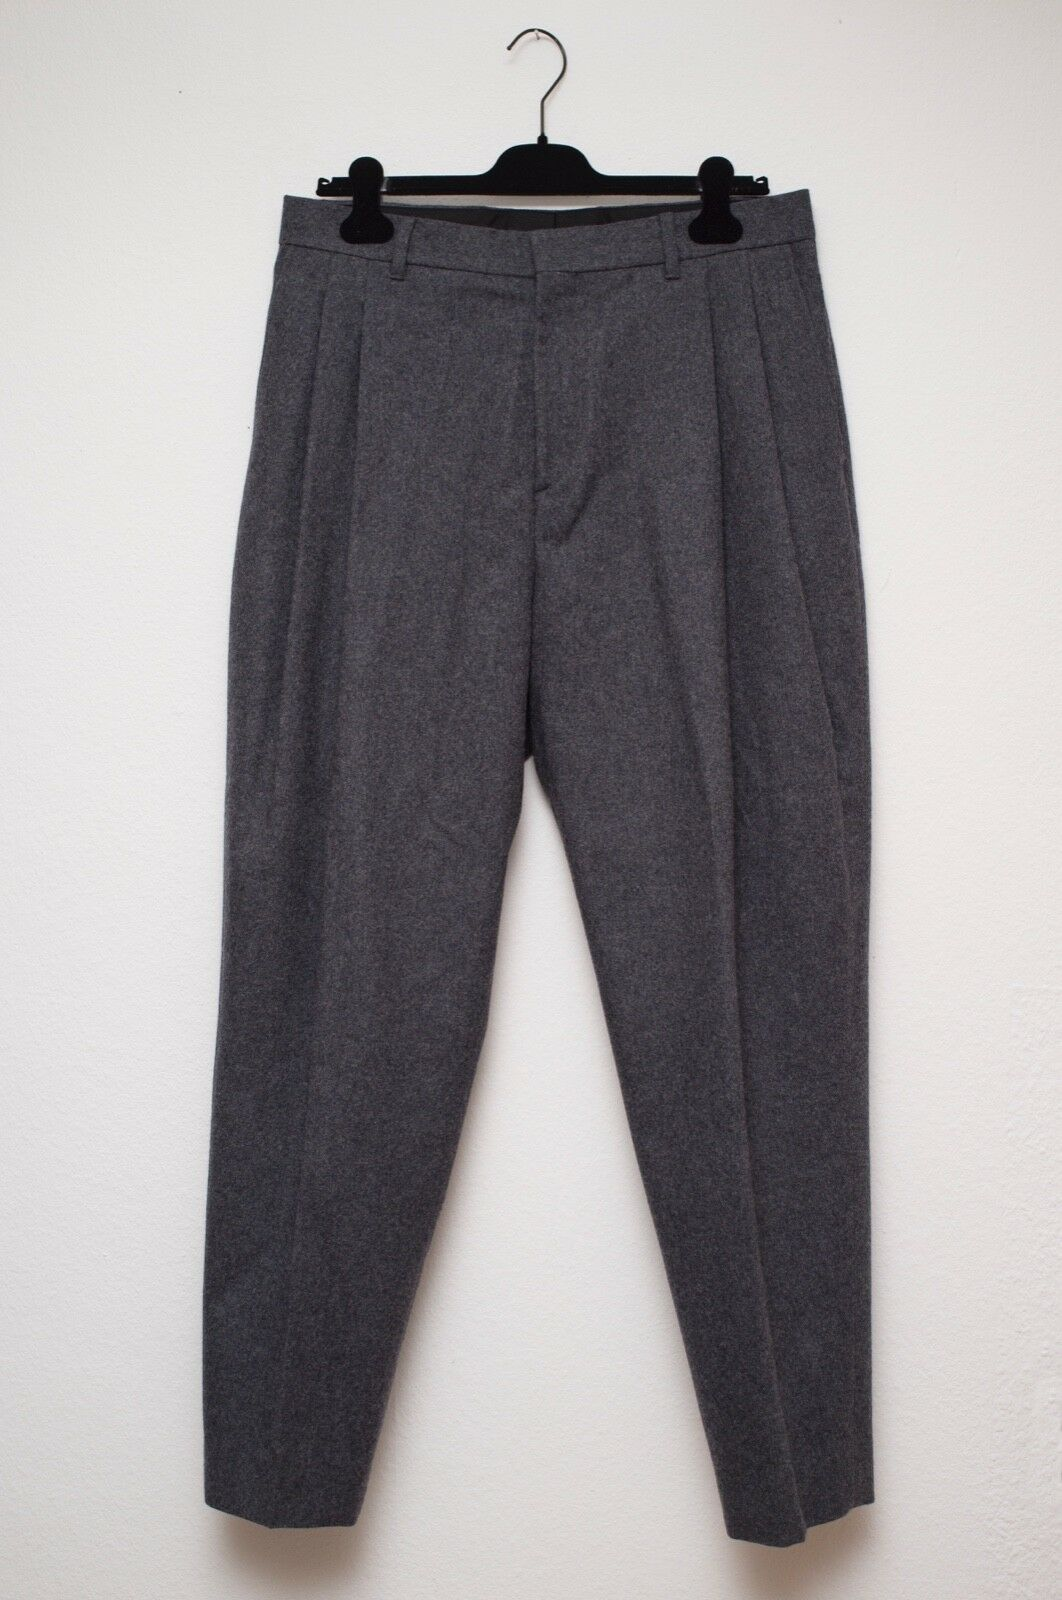 Acne Studios Piano Flannel grau melange trouser Größe 50 like new